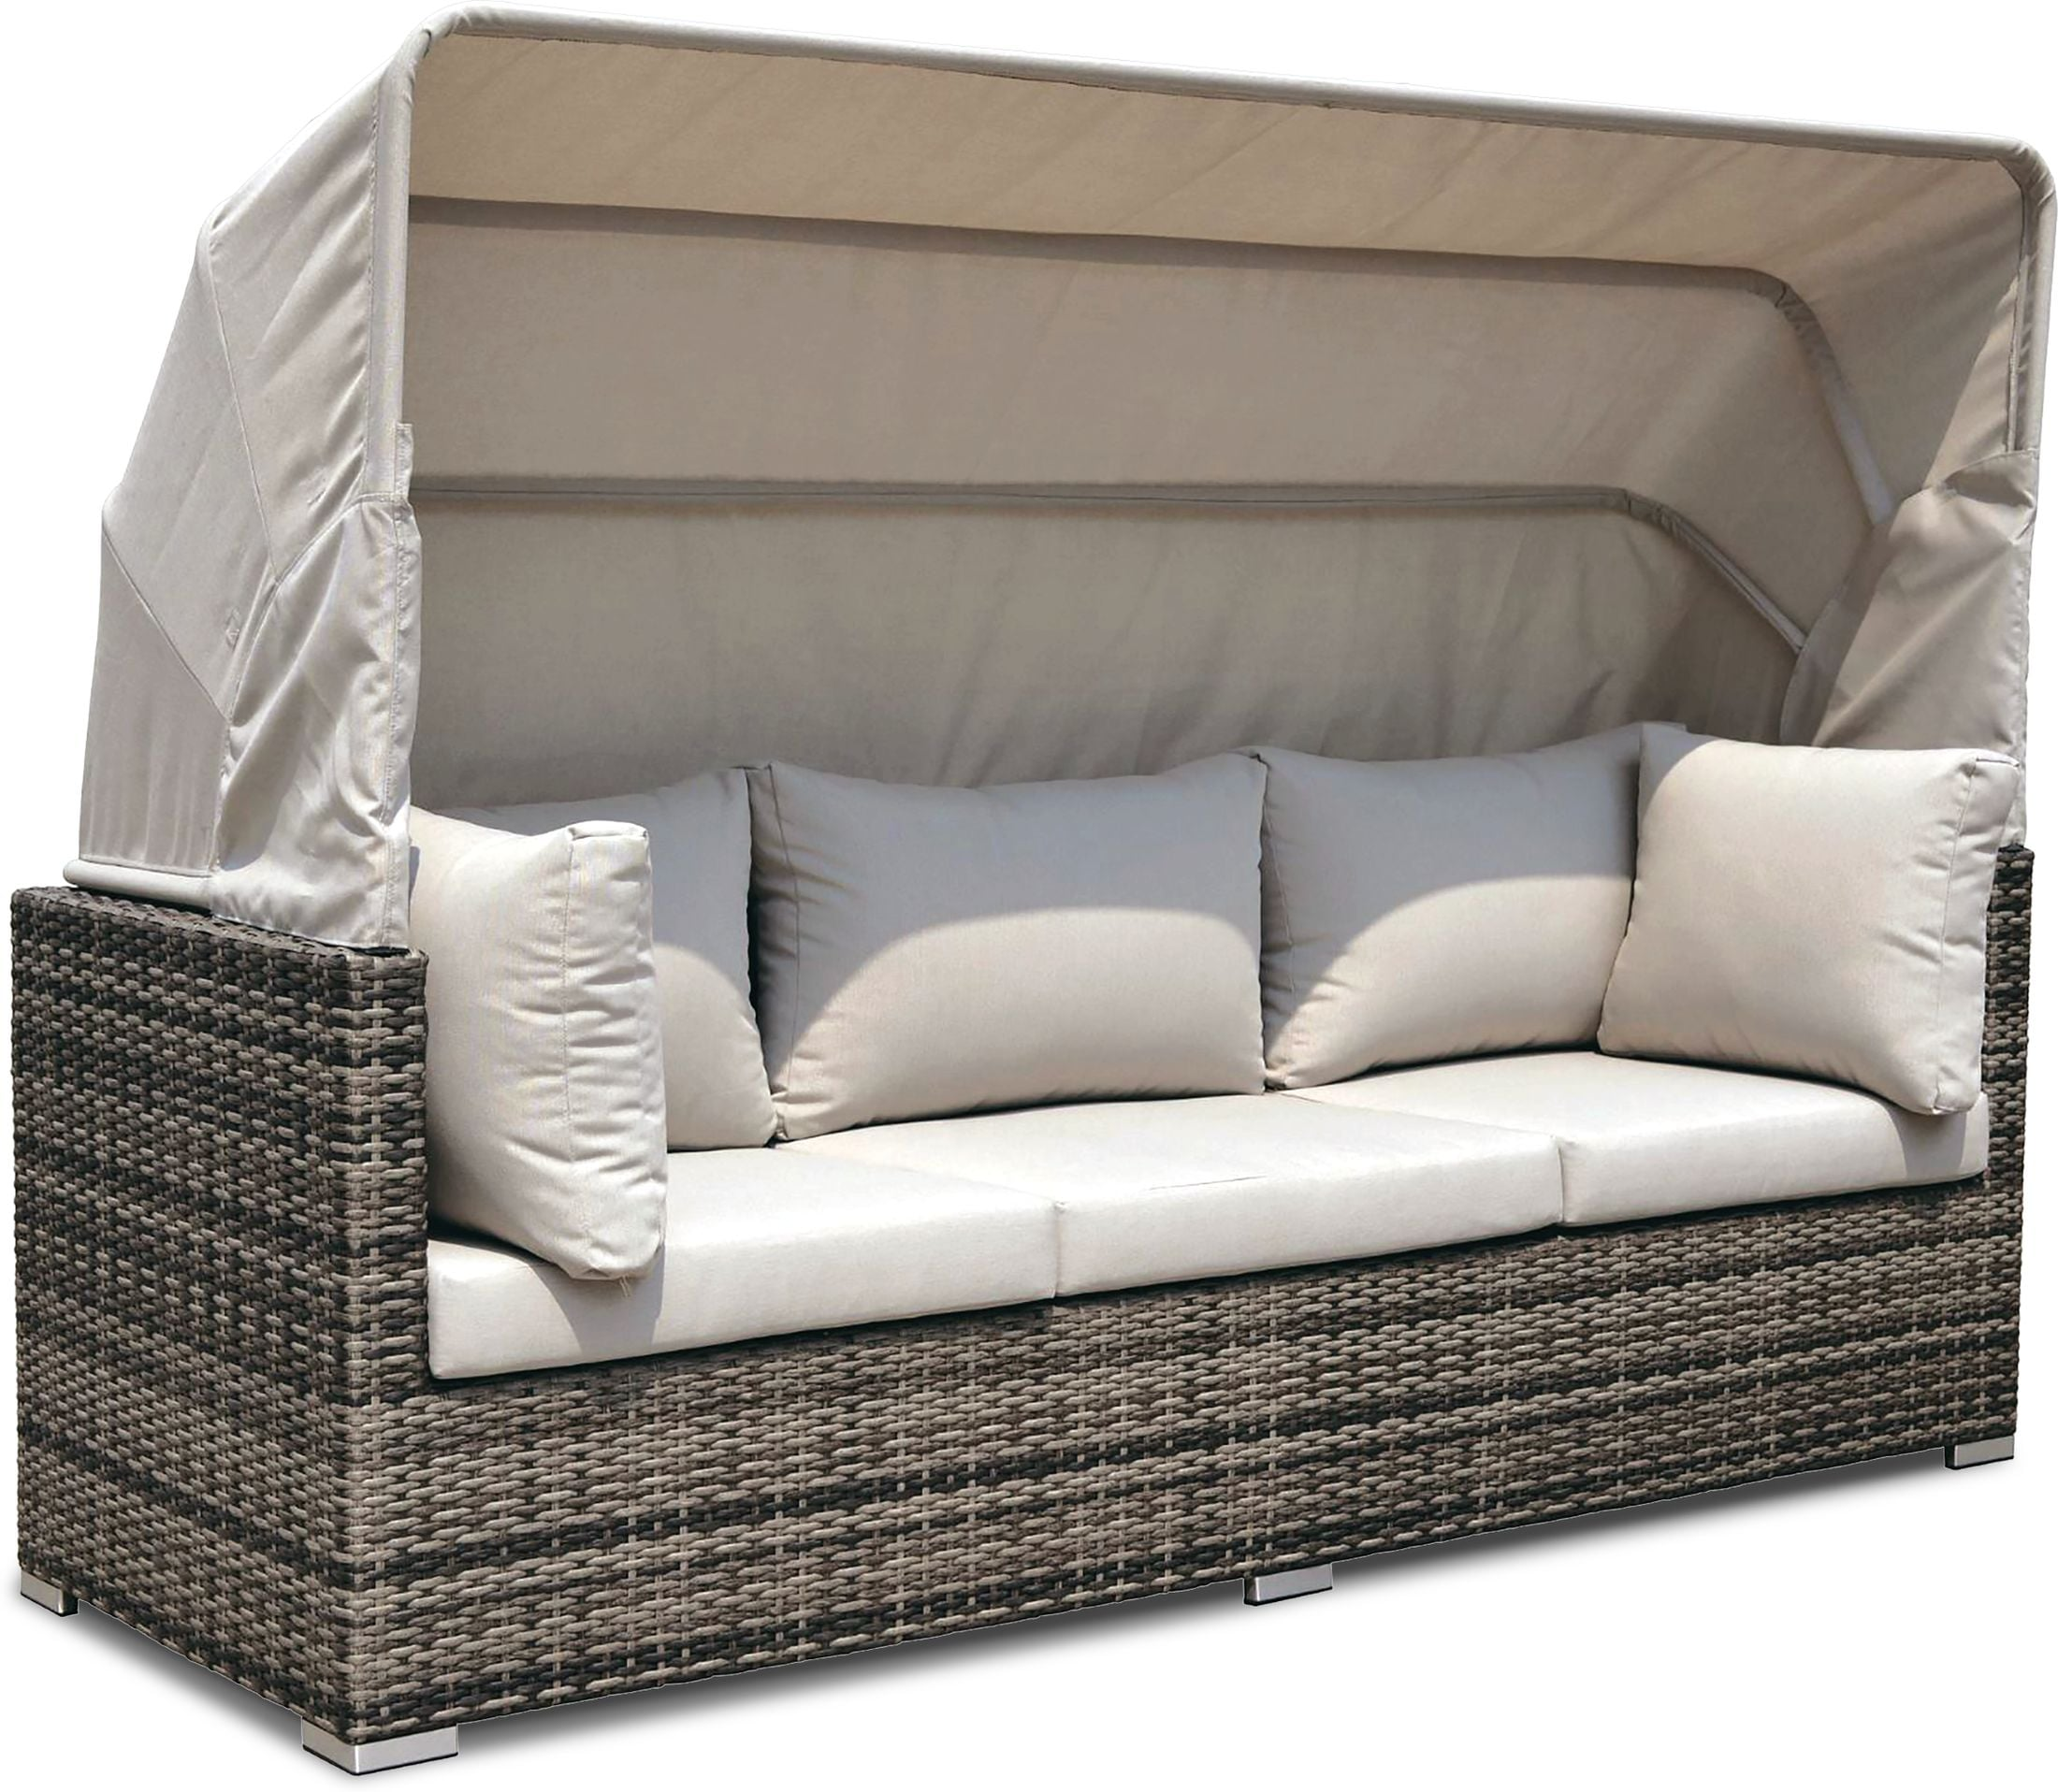 Outdoor Furniture - Gulf Shore Outdoor Convertible Sectional